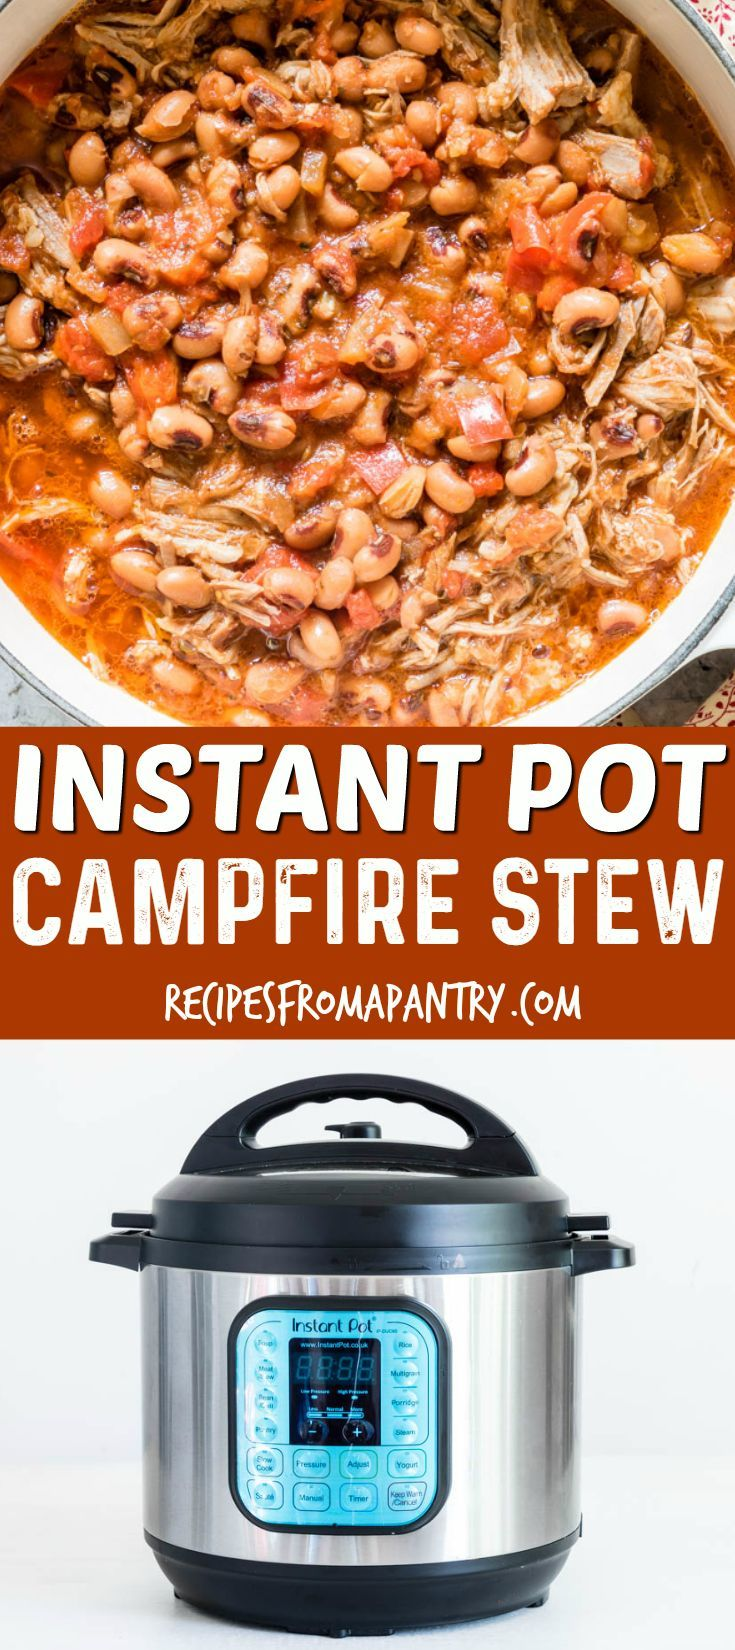 Check out this AMAZING and FLAVOURFUL Instant Pot Campfire Stew recipe! You'll learn how to make Instant Pot Campfire Stew as well as Slow Cooker Campfire Stew, Oven Campfire Stew, and of course Campfire Stew on the campfire. A hearty and easy stew recipe from Recipes from a Pantry. #campfirestew #instantpot #camping #camprecipes #stew